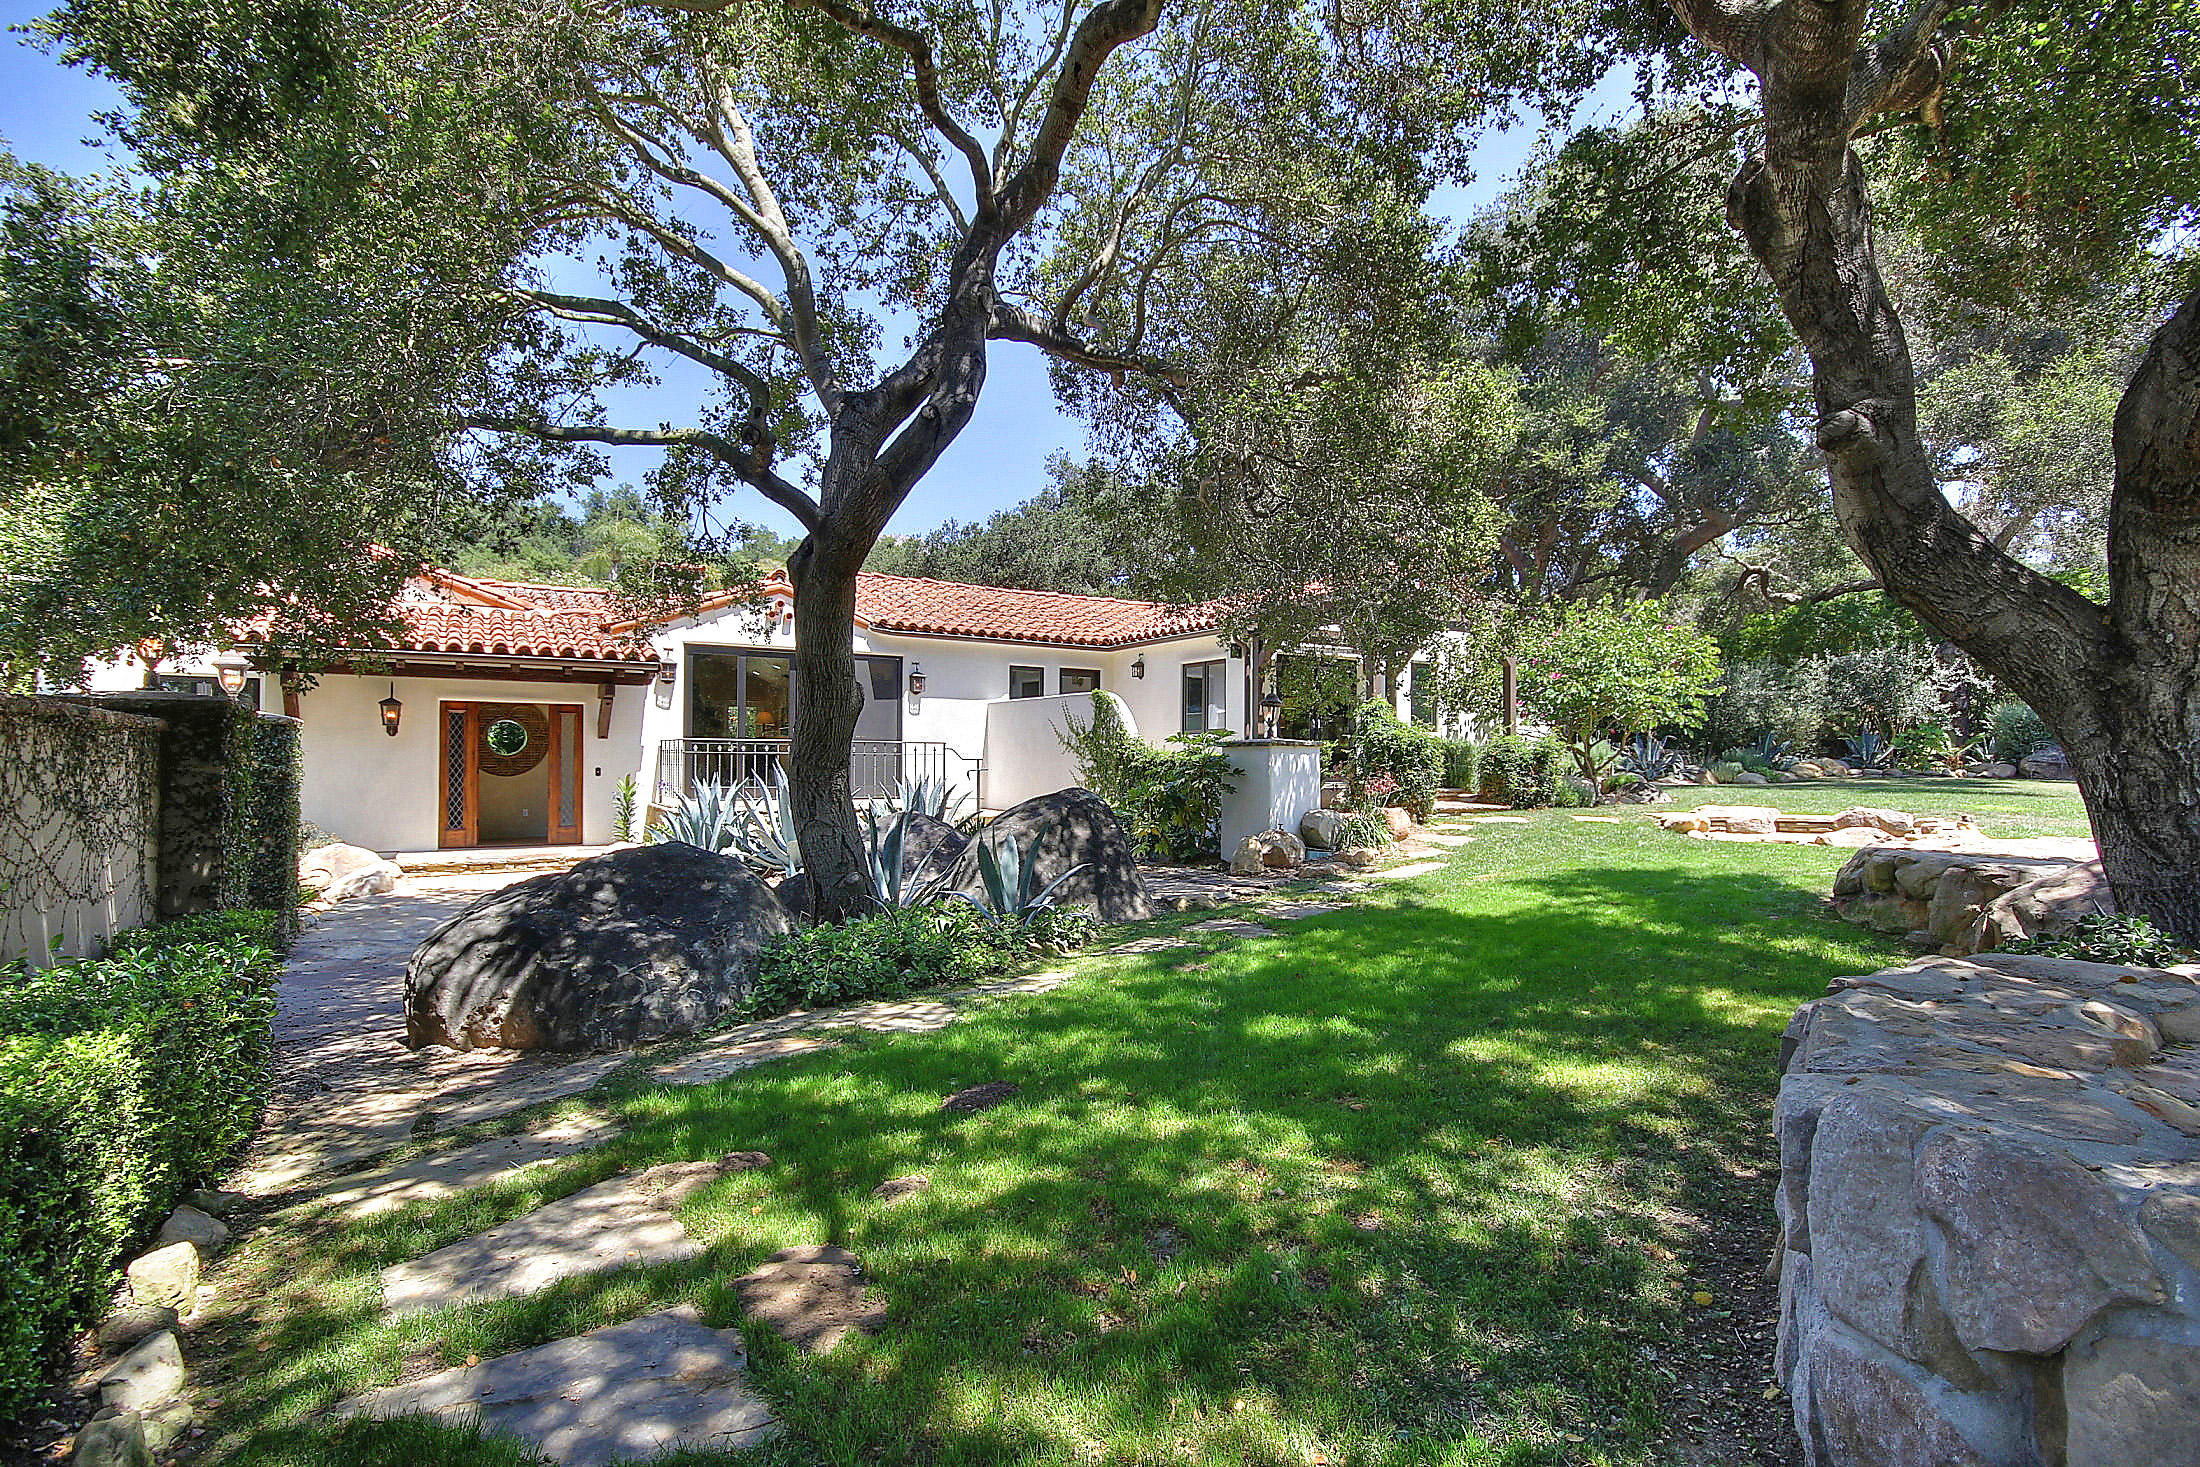 Property photo for 2540 Foothill Rd Santa Barbara, California 93105 - 14-2579